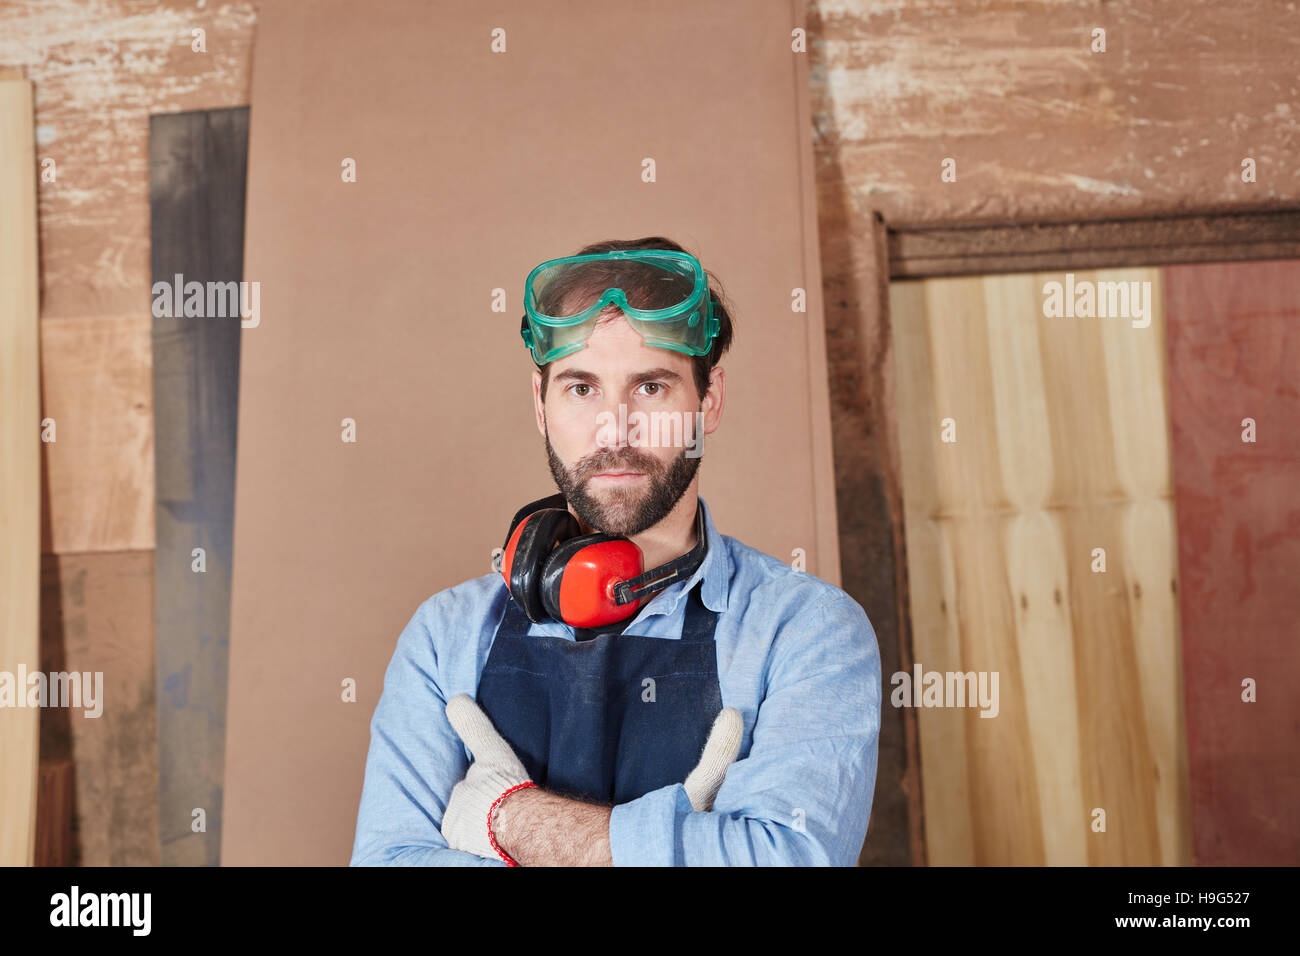 Man as artisan with arms crossed looking confident - Stock Image